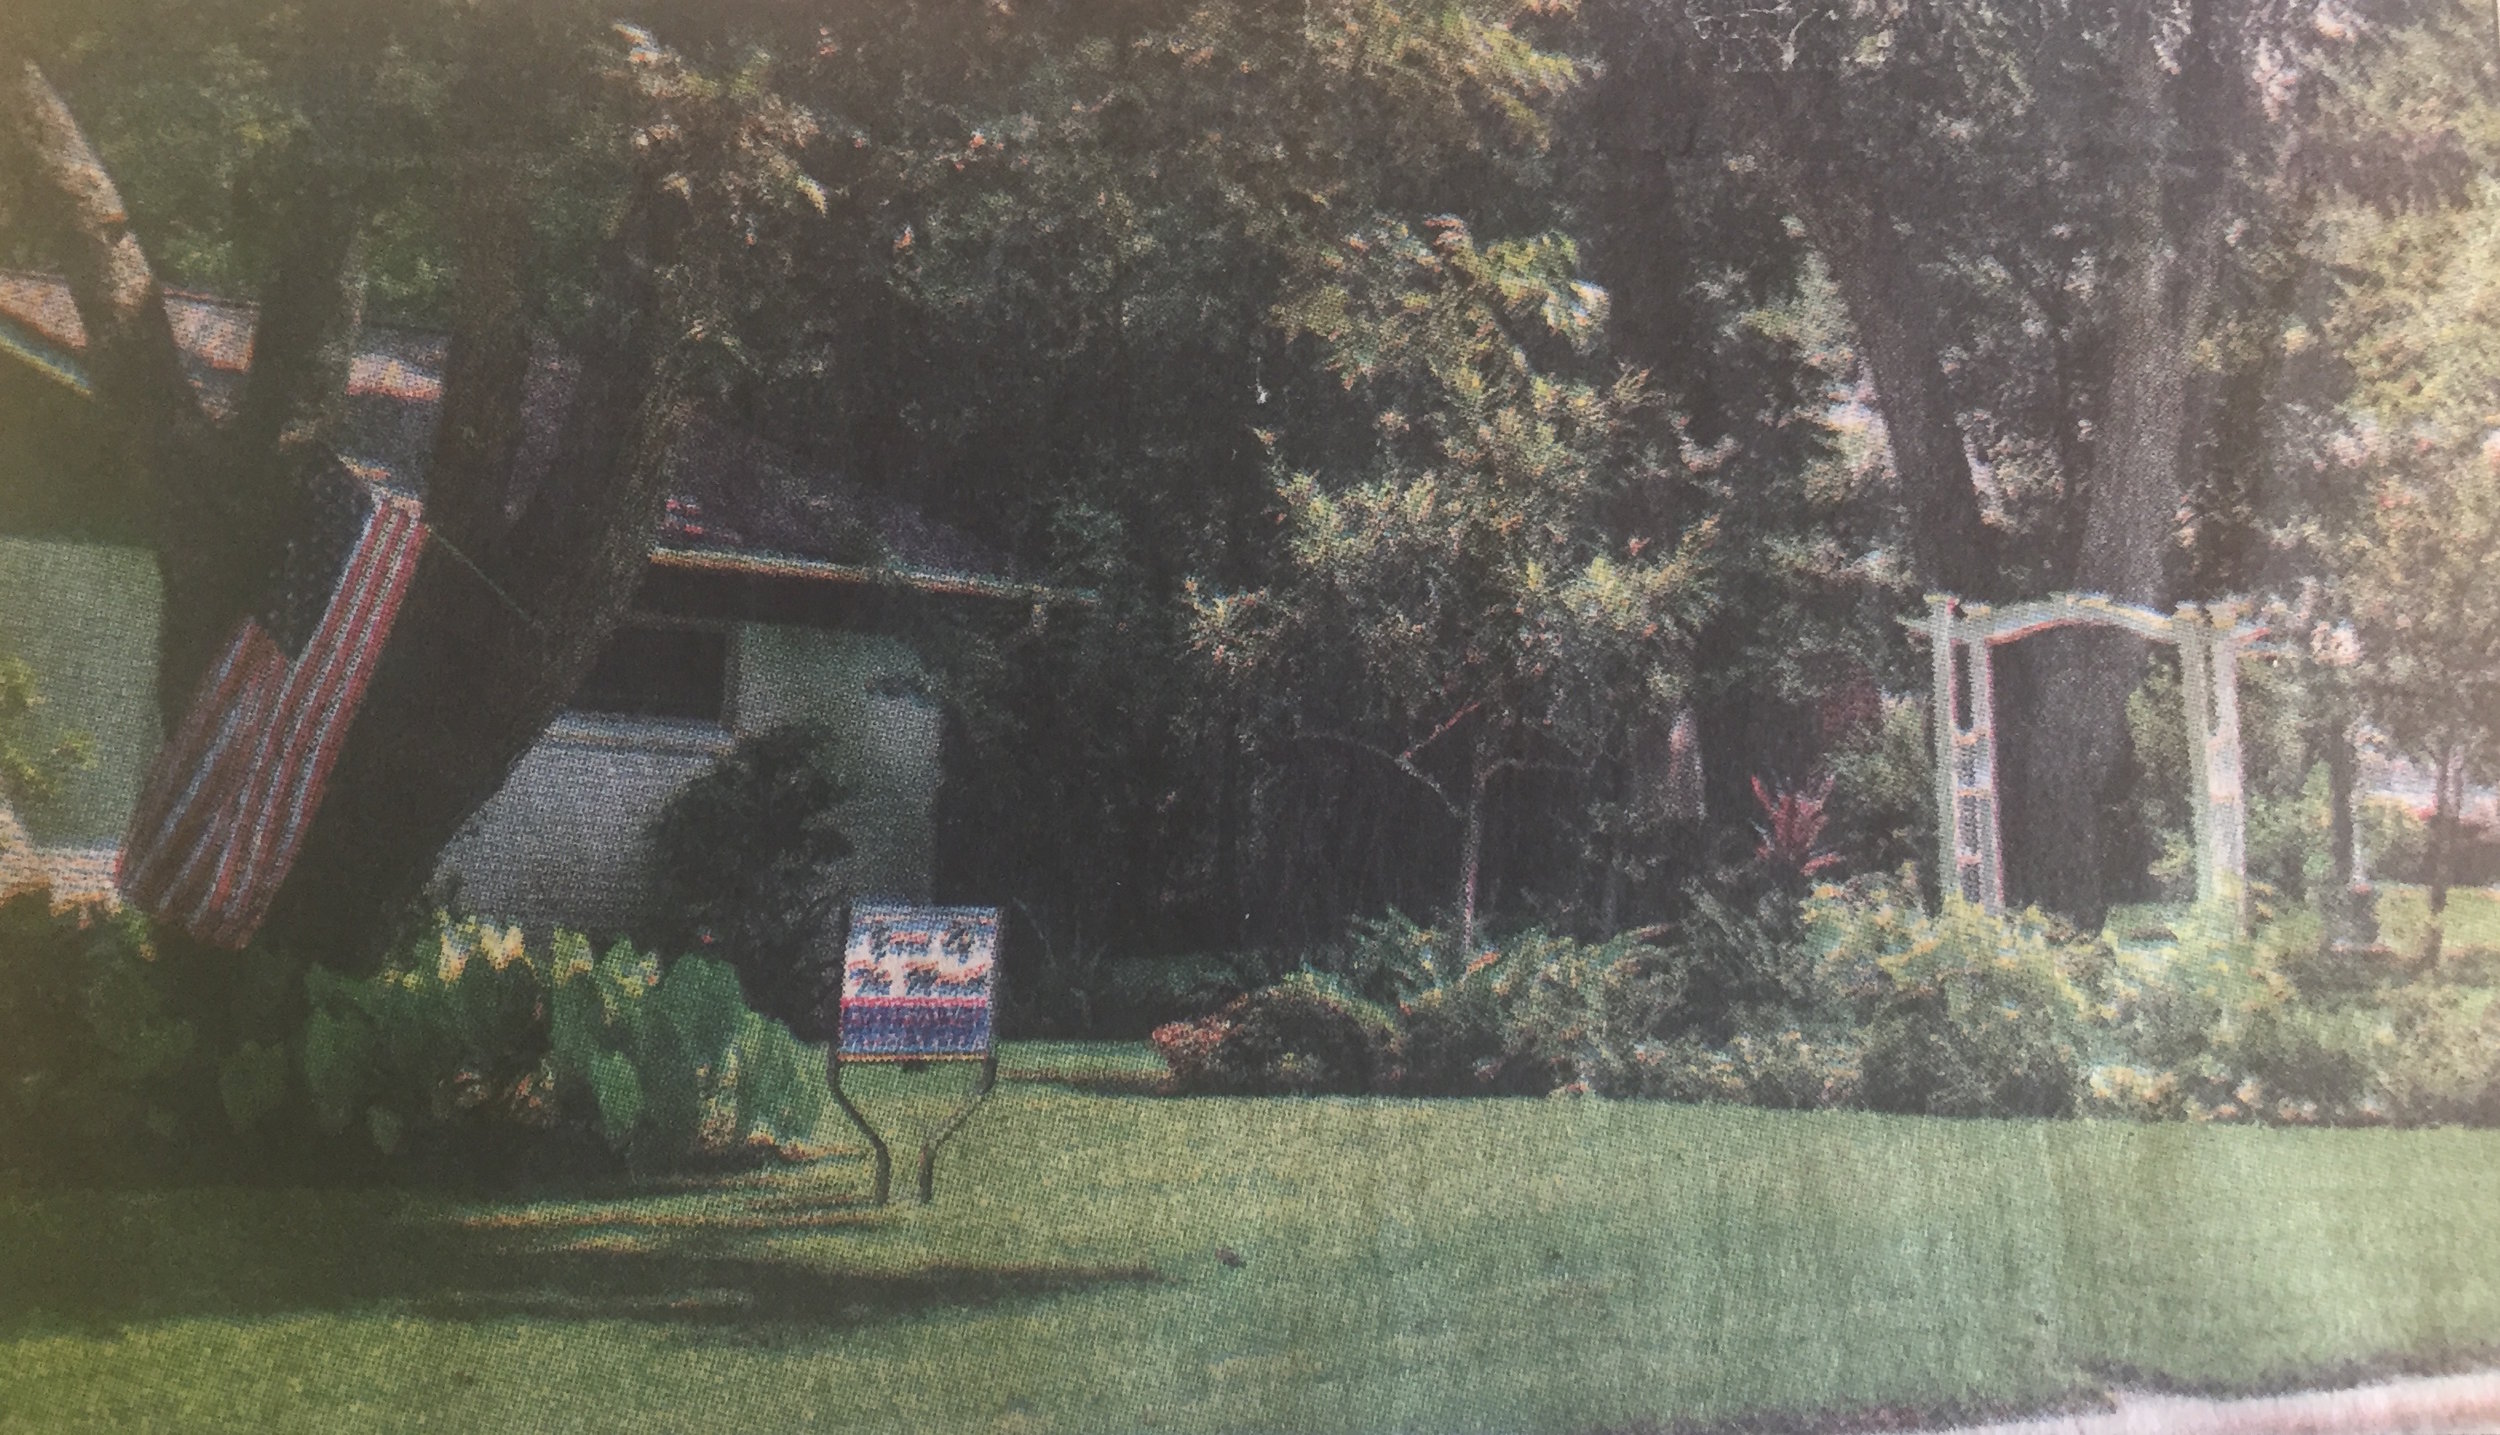 August Yard of the Month was awarded to Jim and Dayle Burkhart of 605 Walnut Hill. Jim is the keeper of the grounds and does a wonderful job of keeping everything so beautifully groomed.